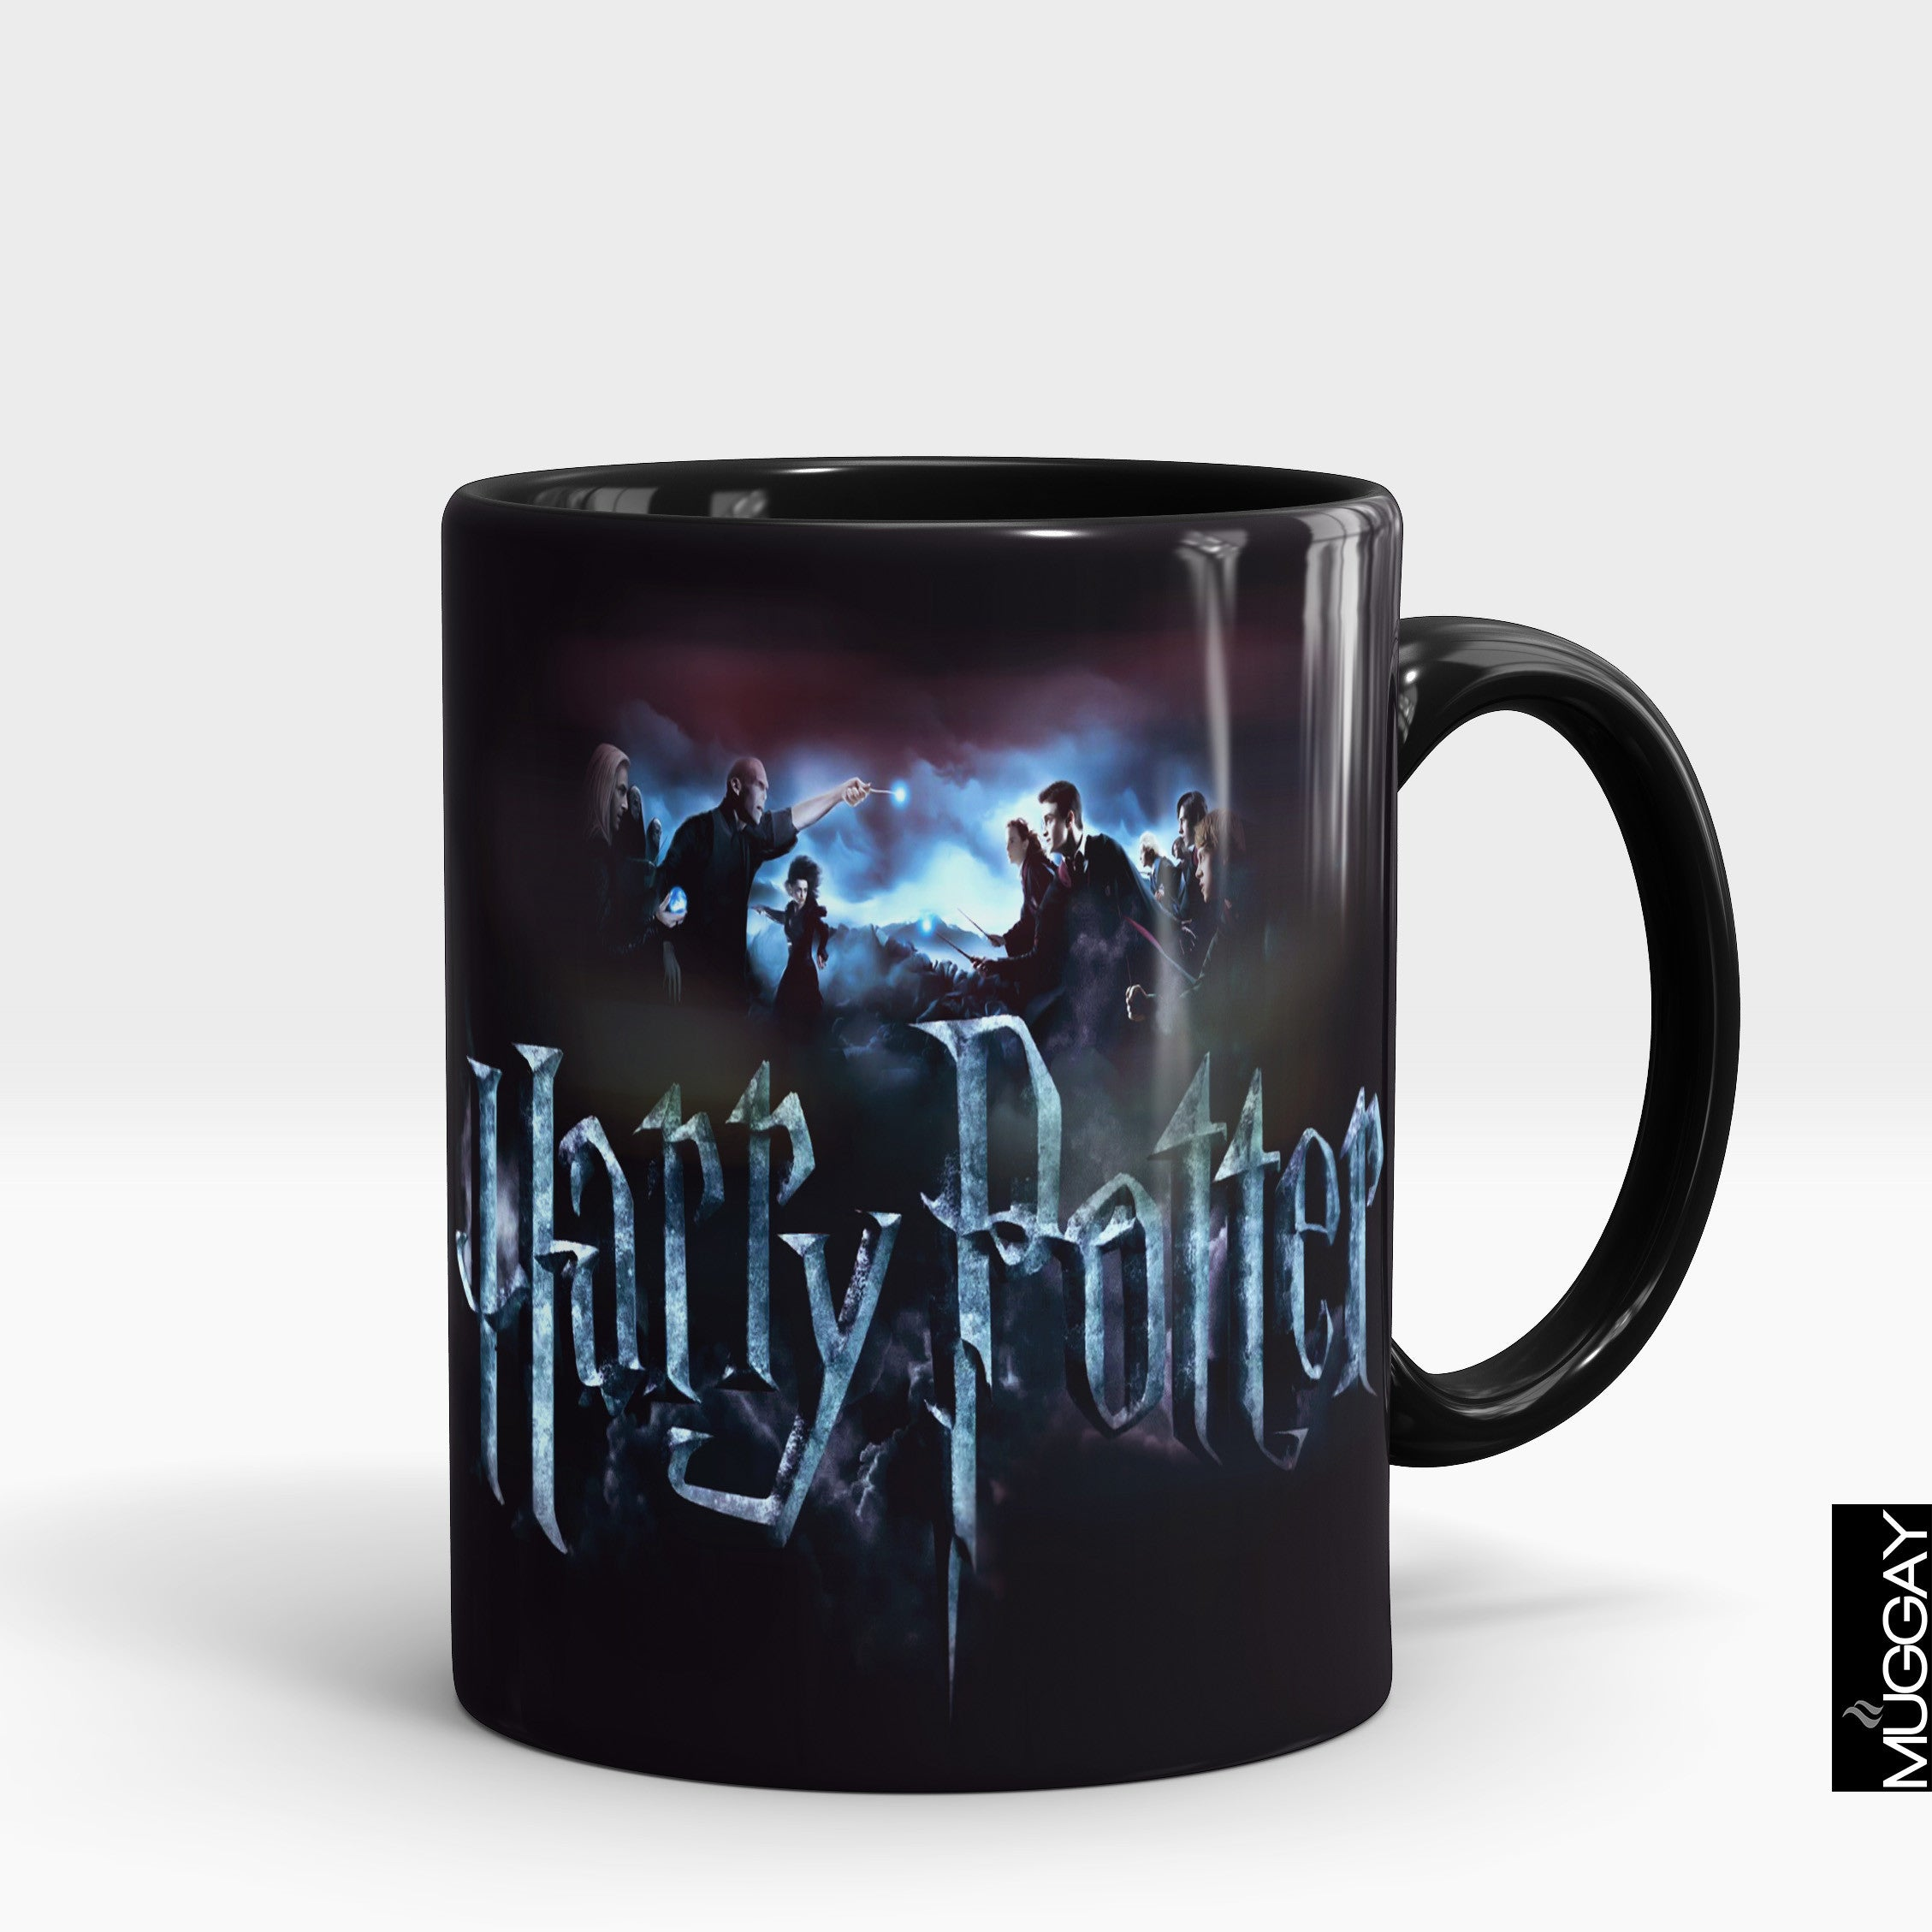 Mugs on Movies -7